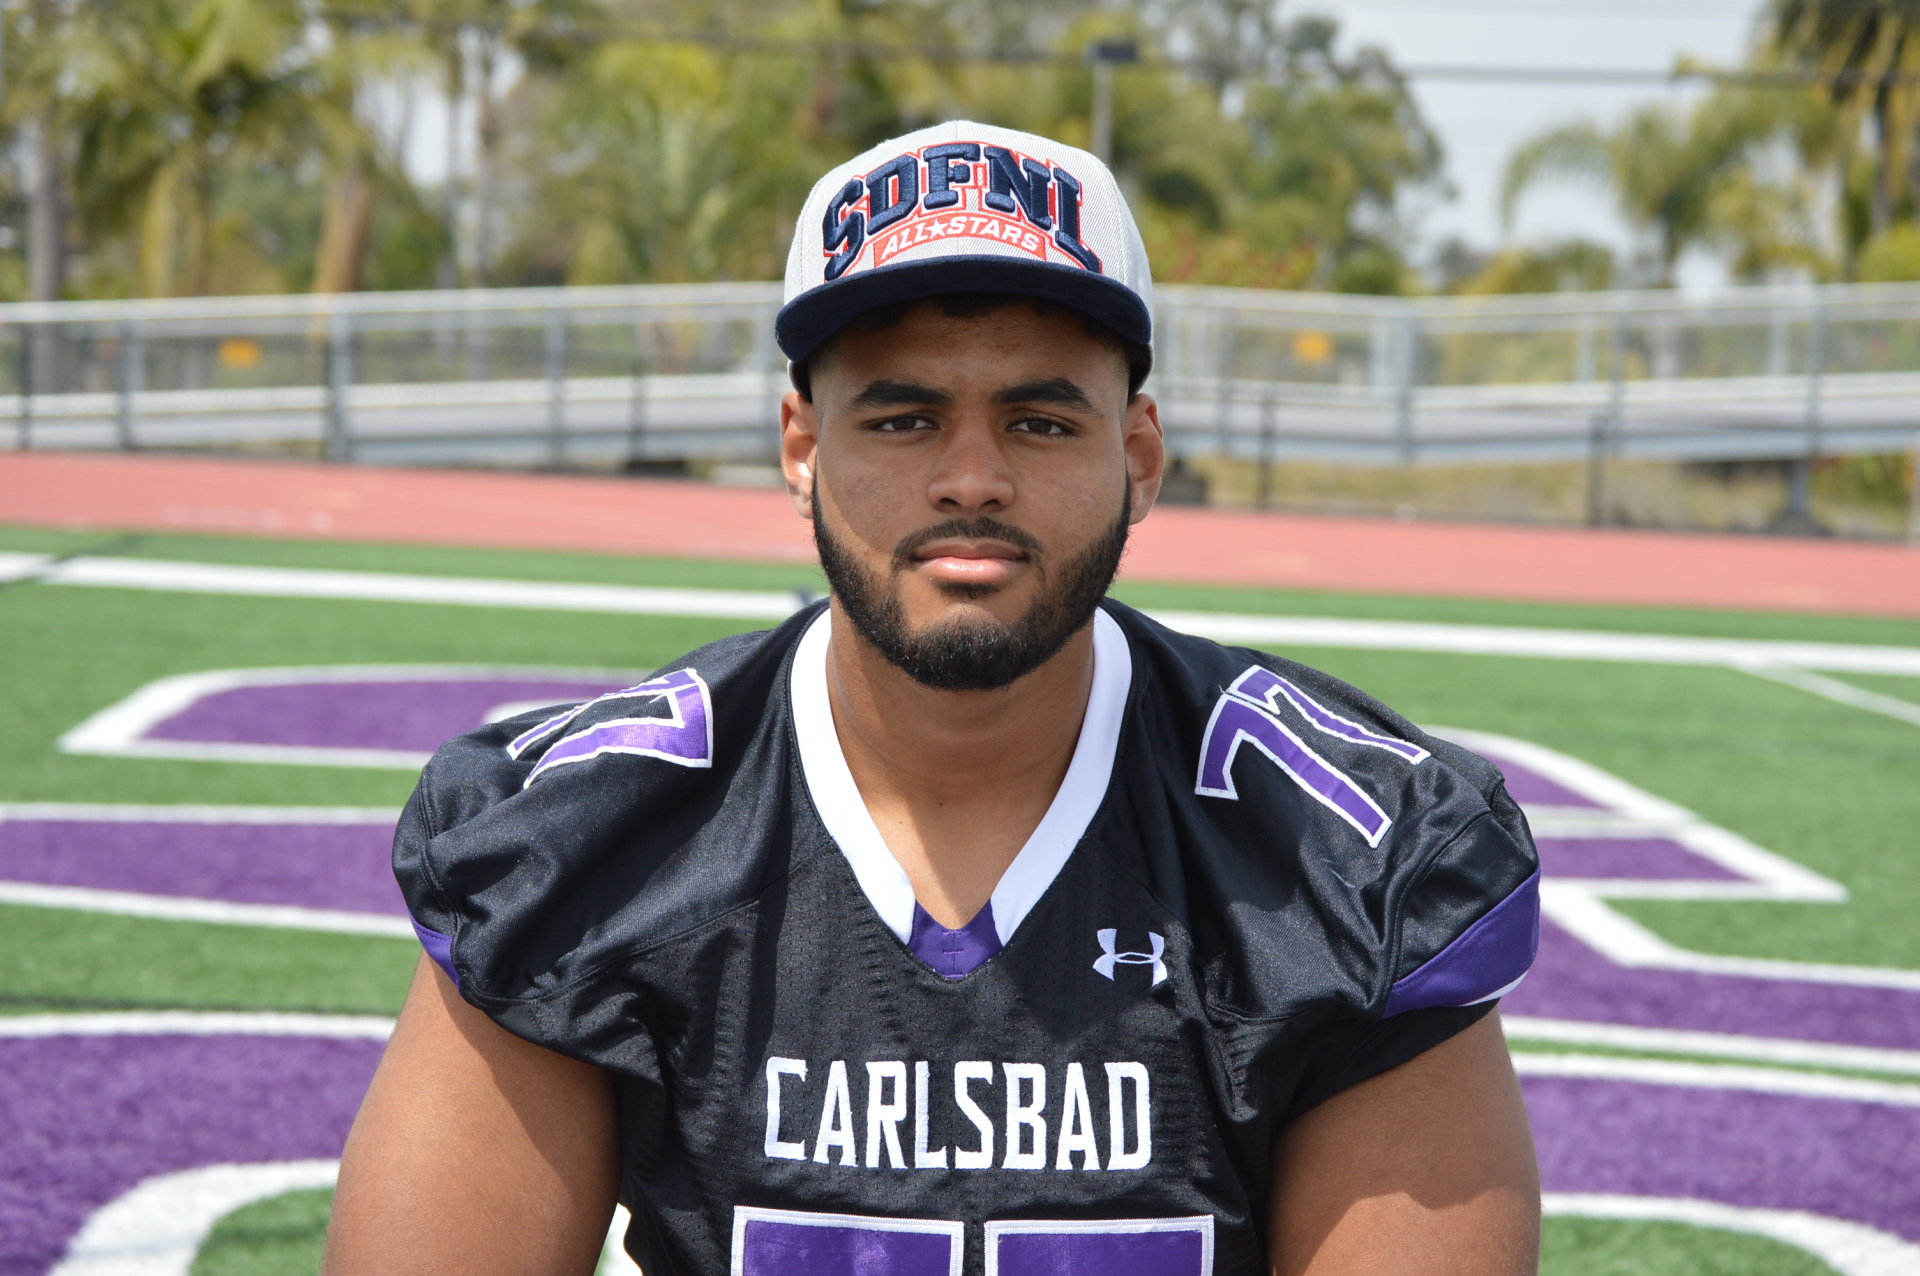 Carlsbad High School - Lineman Carlos Harrison